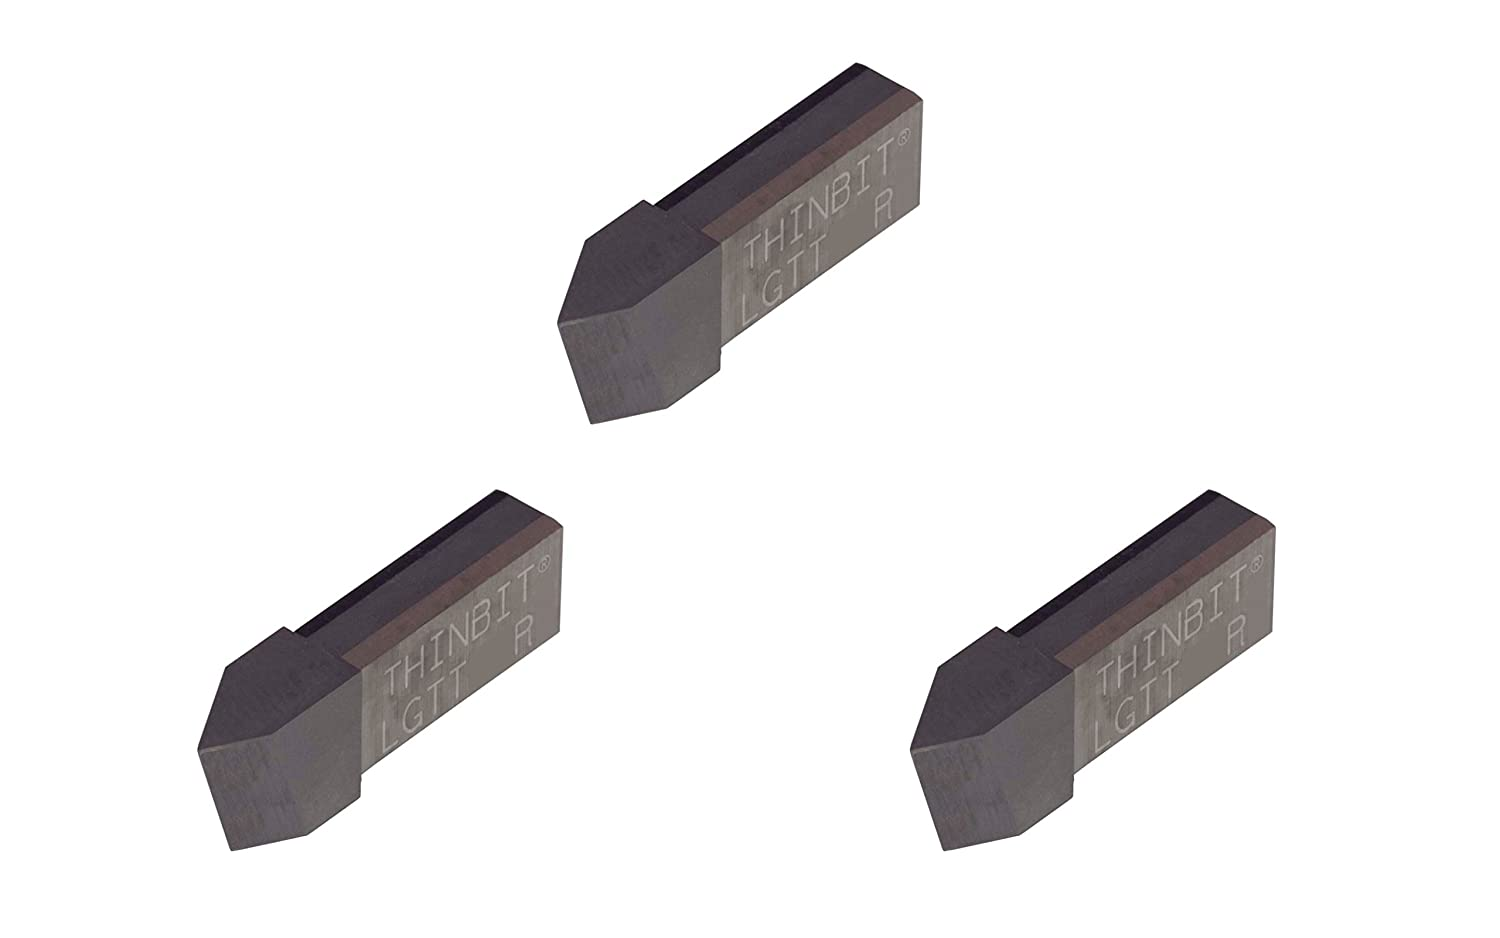 Threading Insert for 8 to 56 TPI in Plastics Abusive Cutting Conditions and Low RPM Cutting Composites THINBIT 3 Pack LGTTHSR L Series Uncoated High Speed Steel